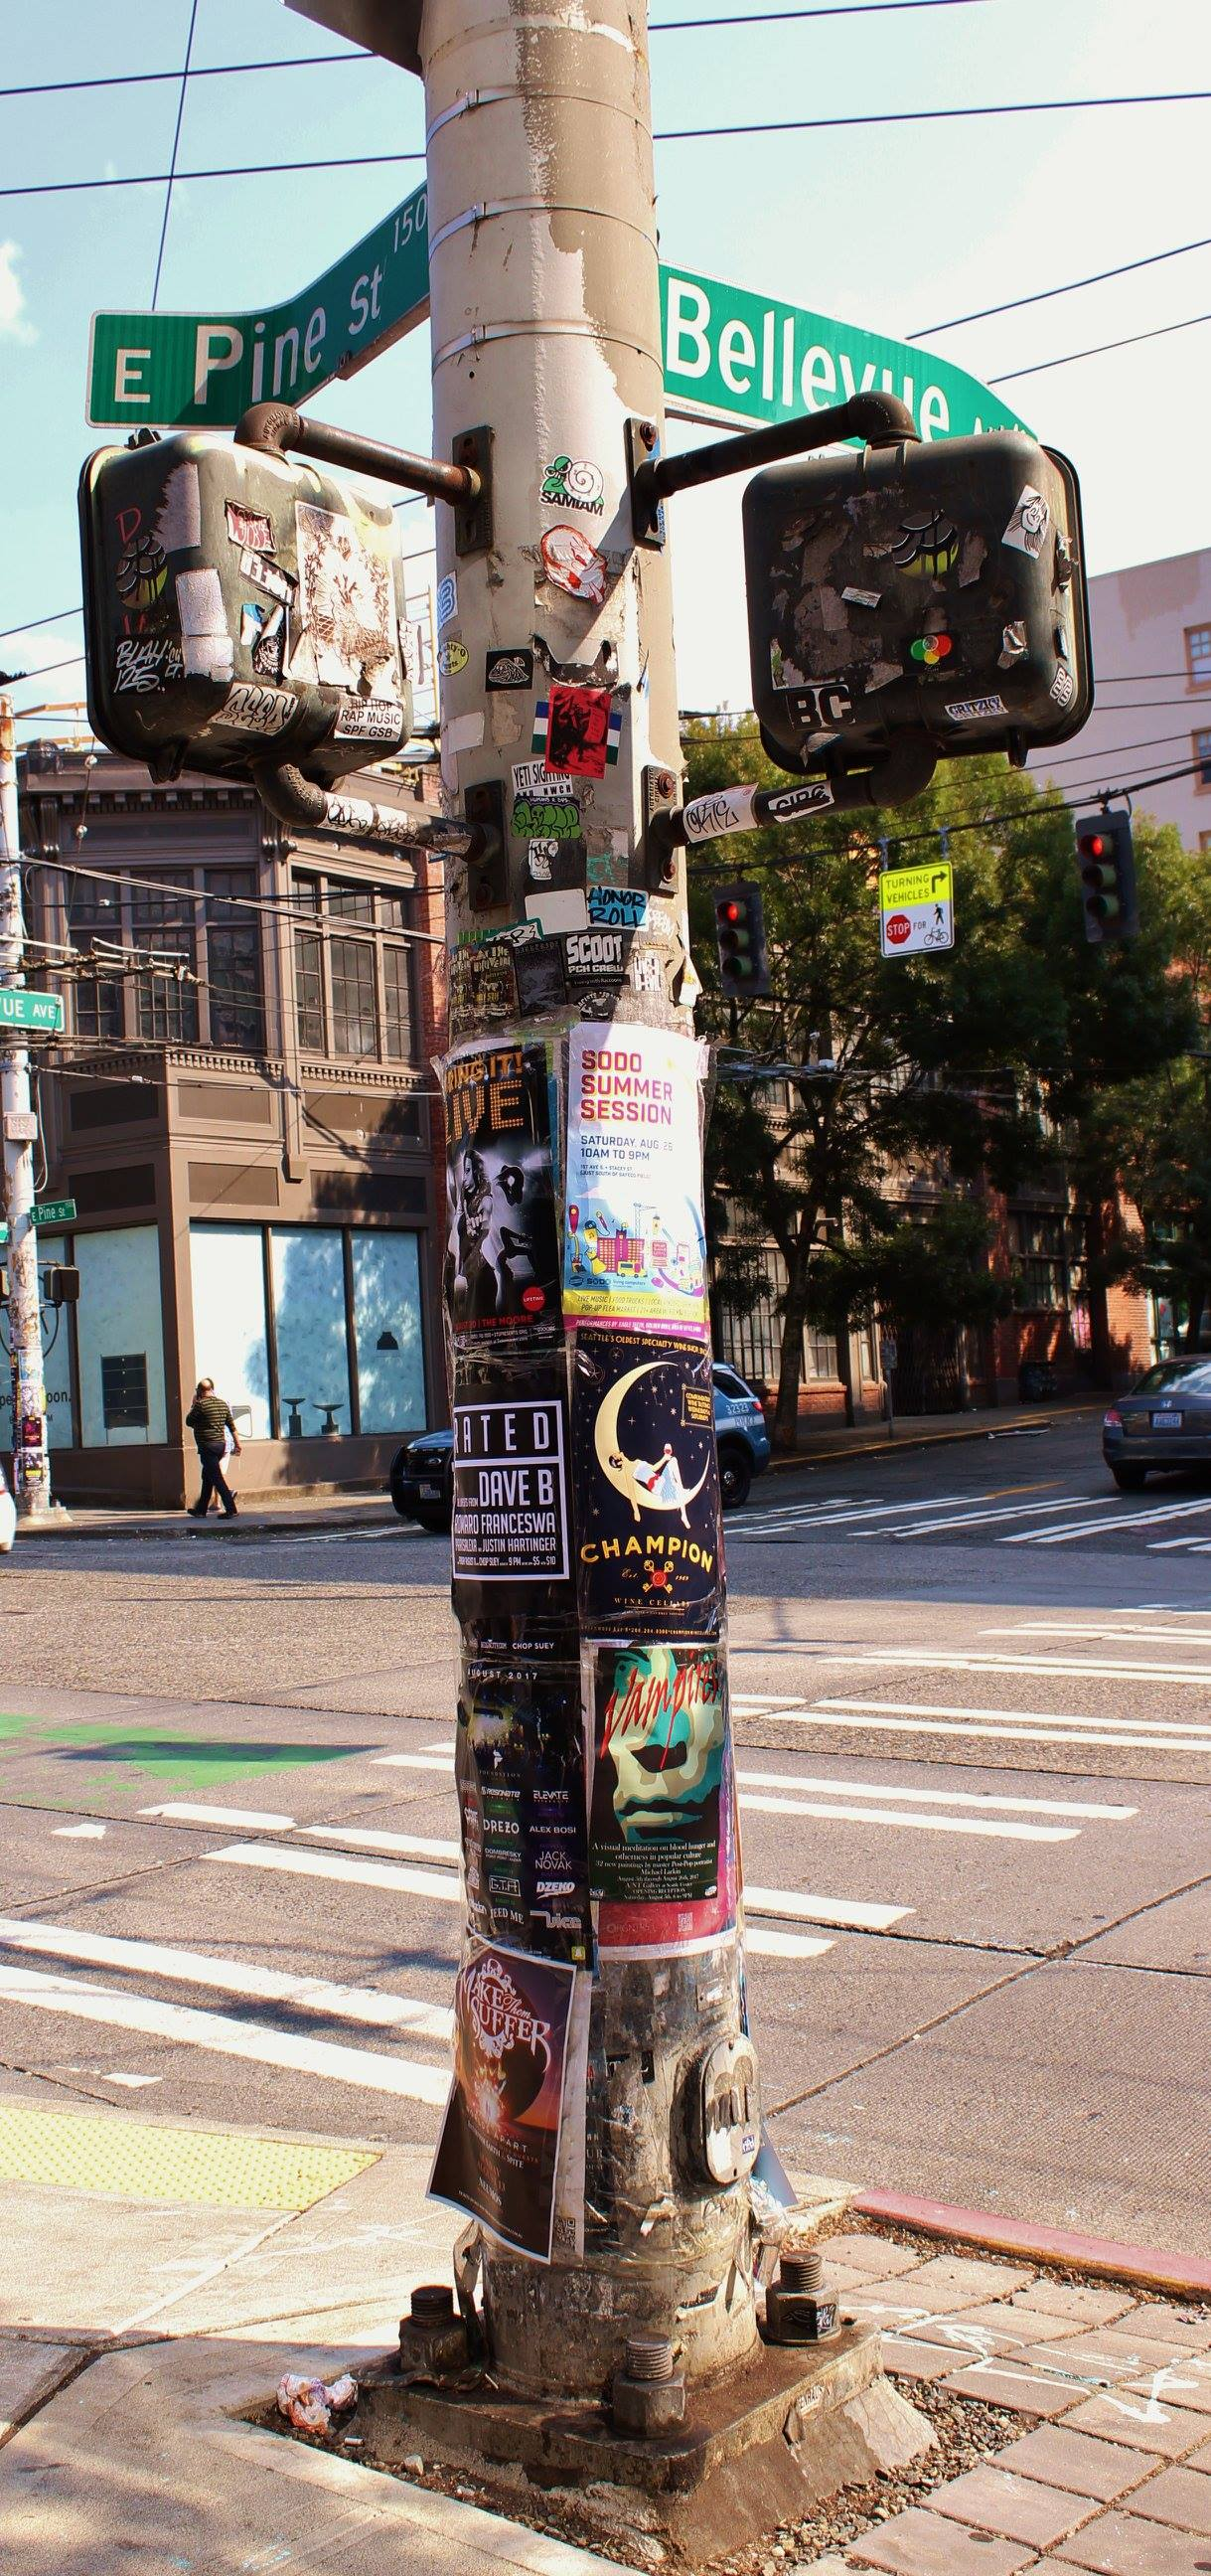 - In Seattle we don't litter….that's what the street poles are for.